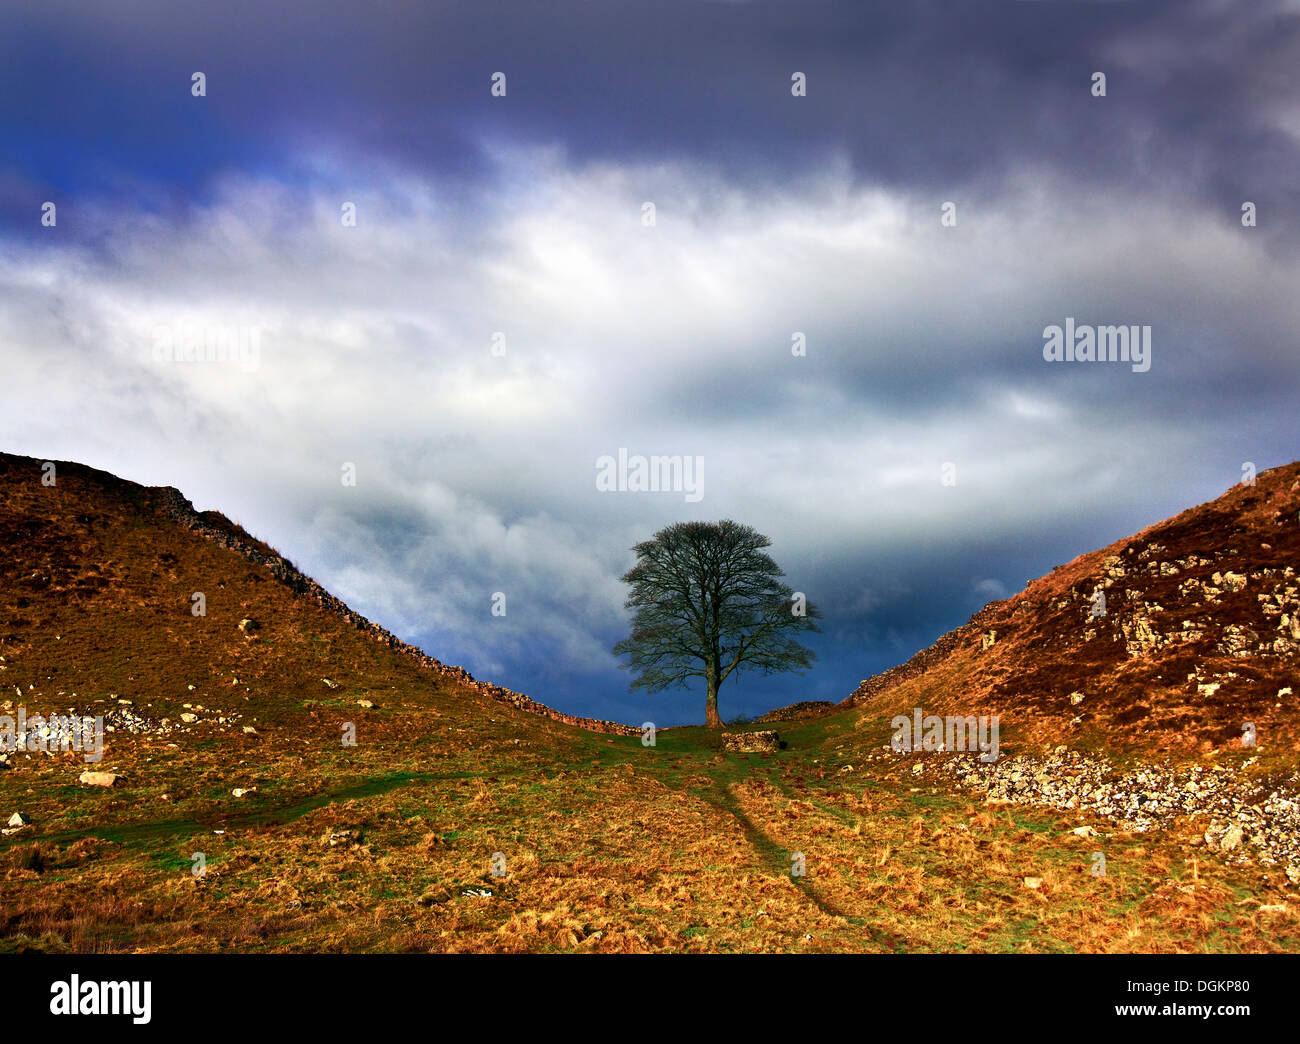 A view of Sycamore Gap in Hadrian's Wall. Stock Photo